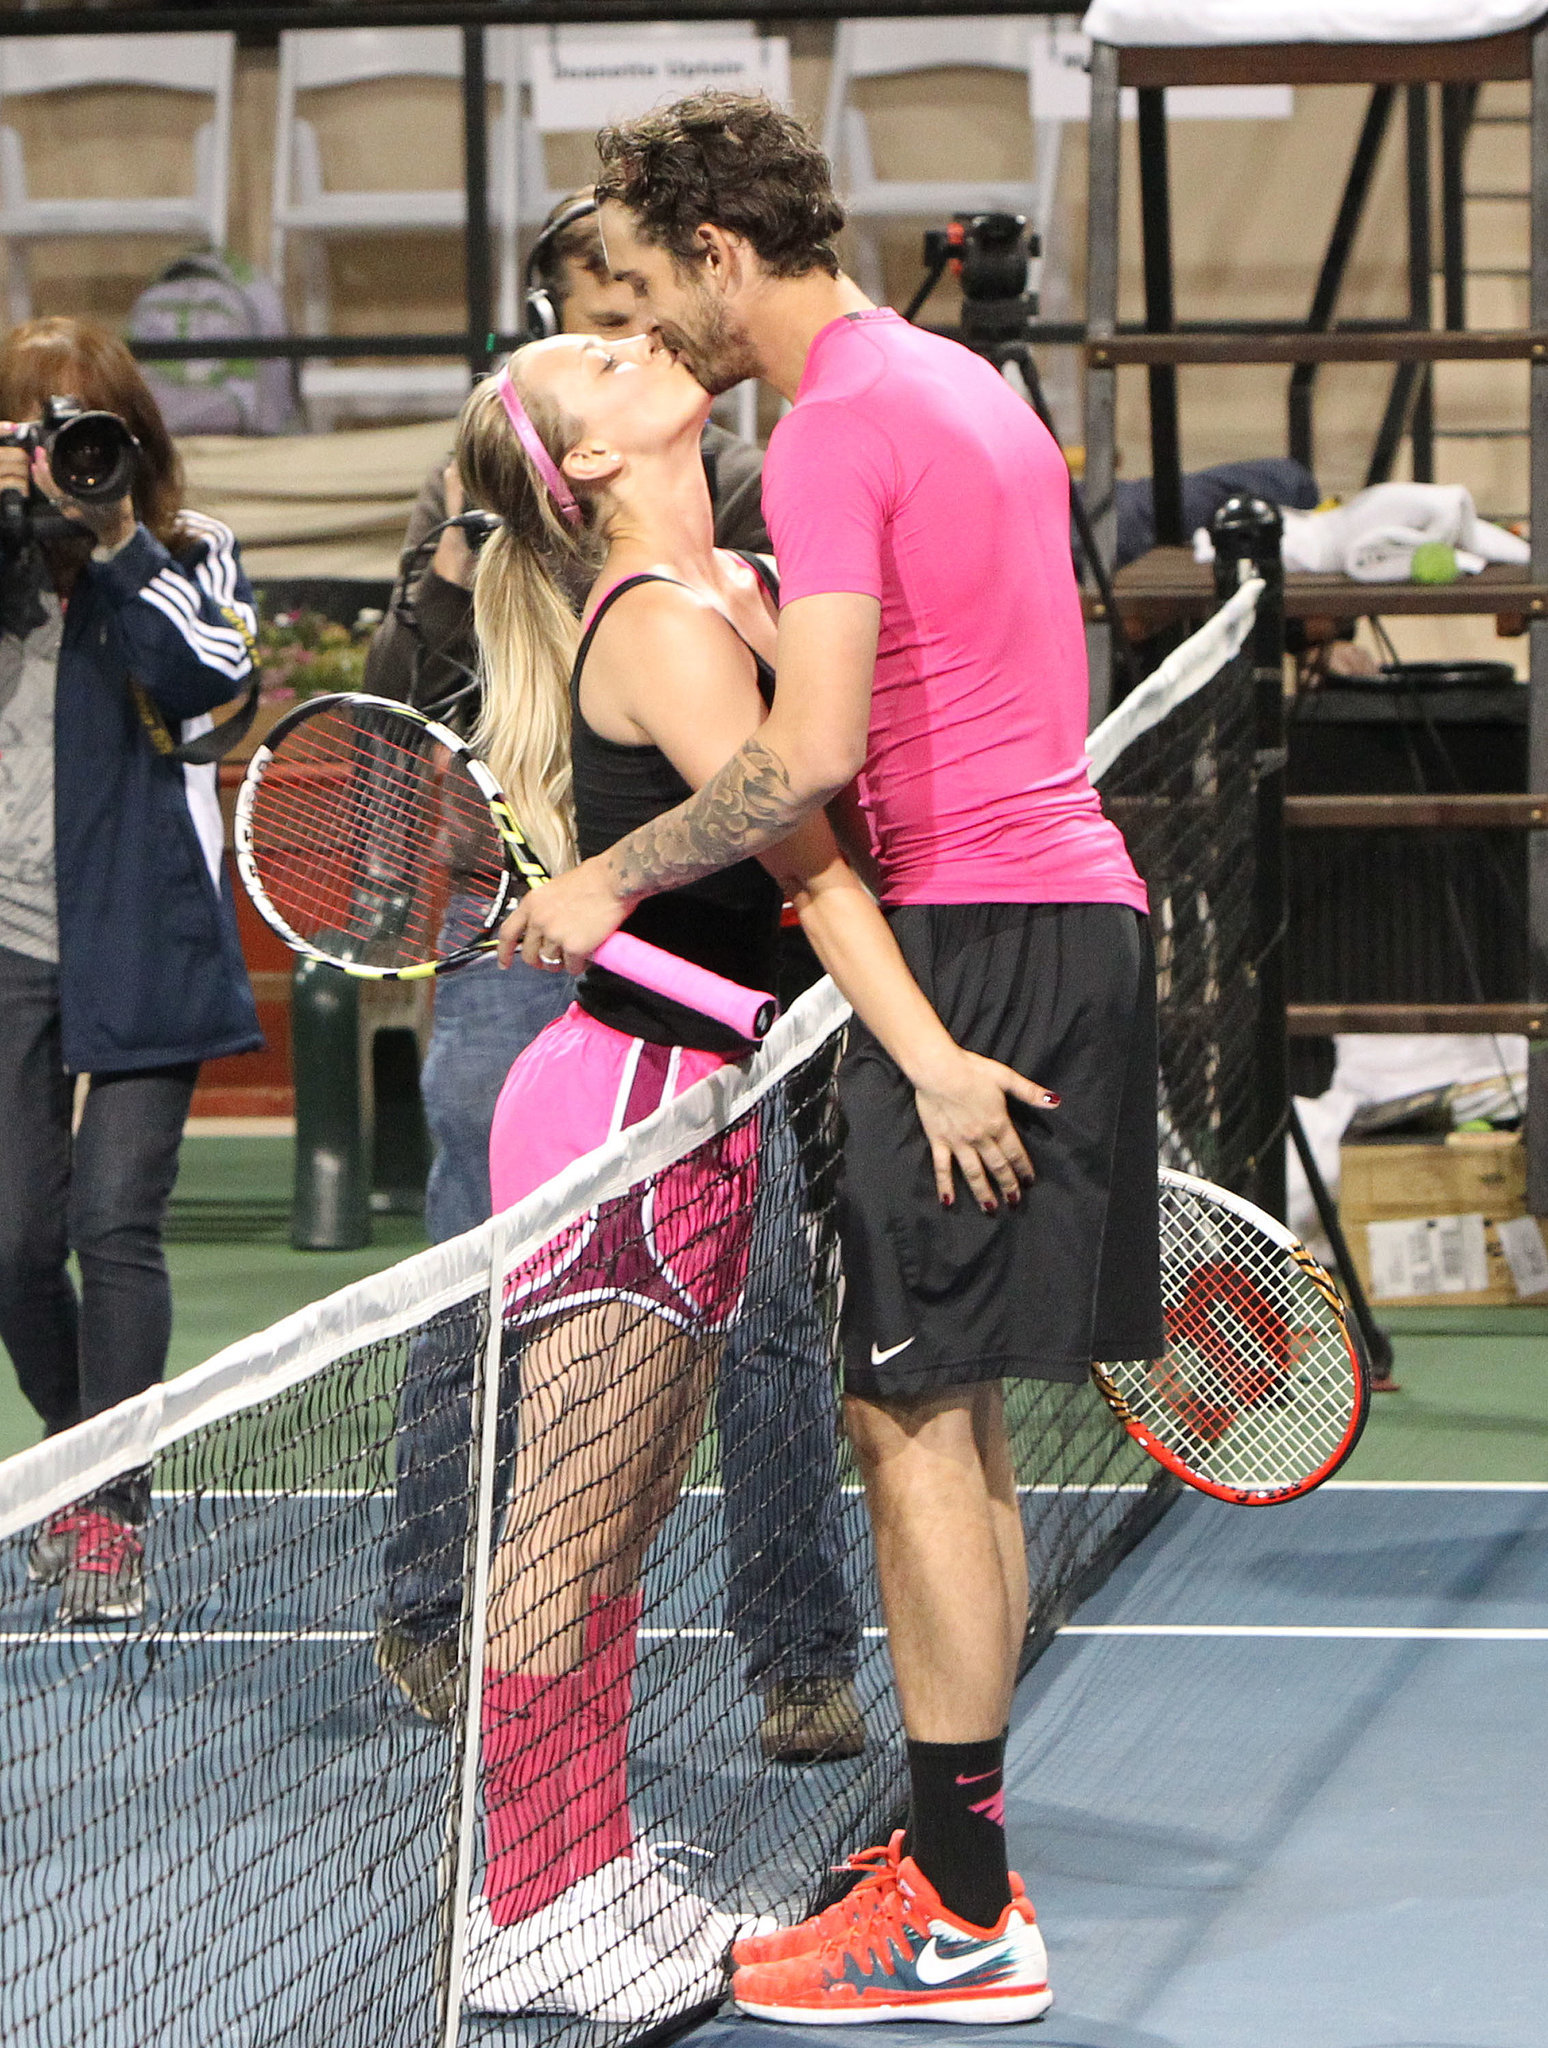 Kaley Cuoco and Ryan Sweeting showed PDA during the 2014 USTA Men's Pro Tennis Championships of Calabasas, CA, on Saturday.